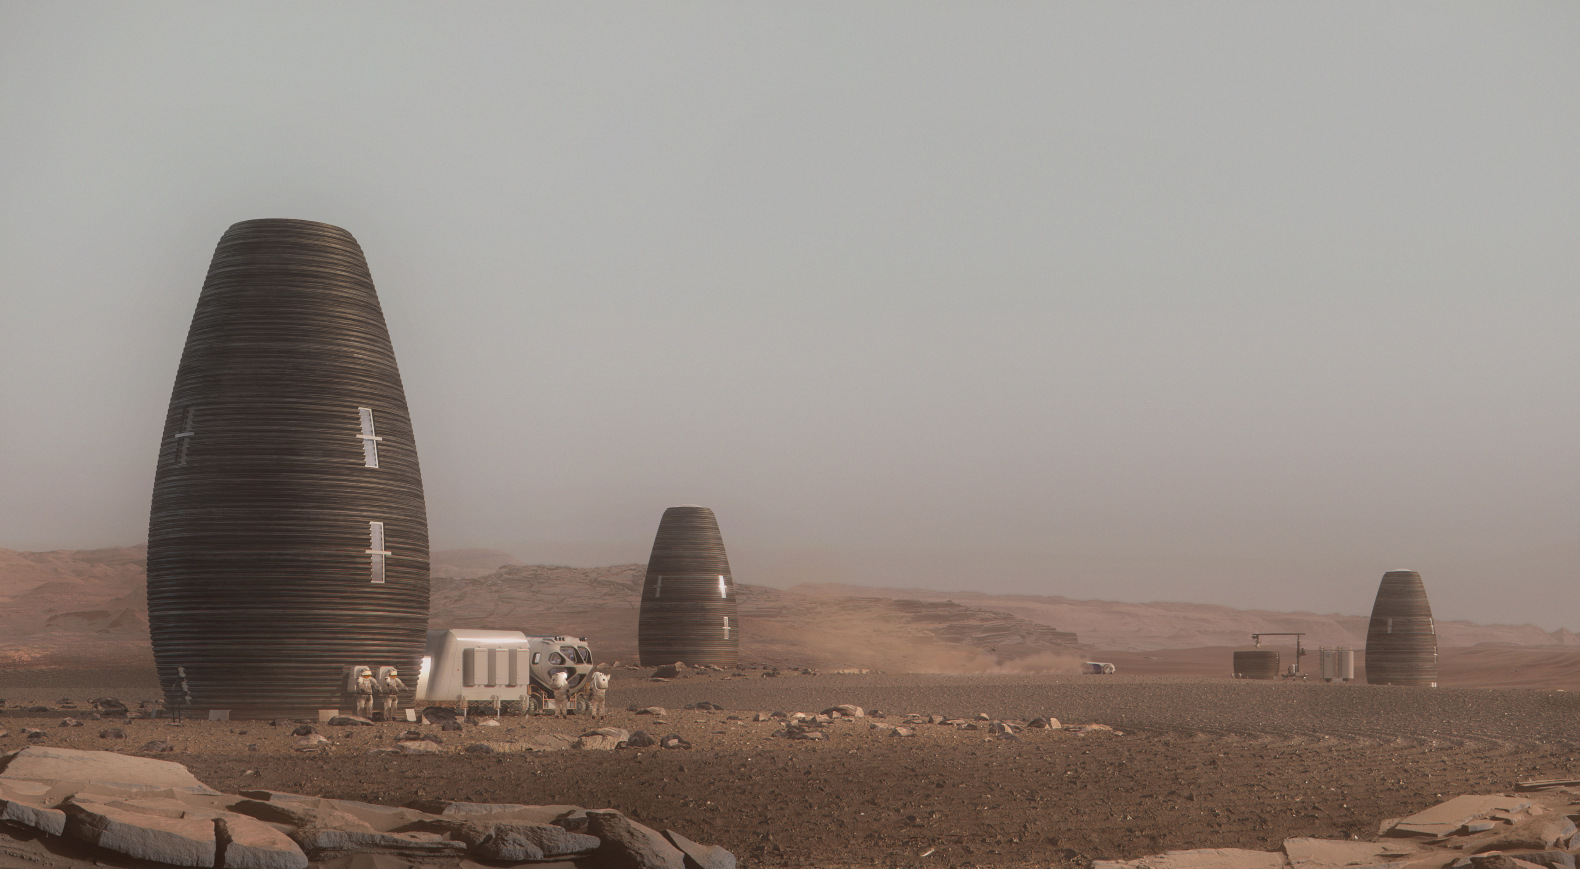 NASA Mars Habitat Challenge winner is a 3D-printed pod made of biodegradable materials